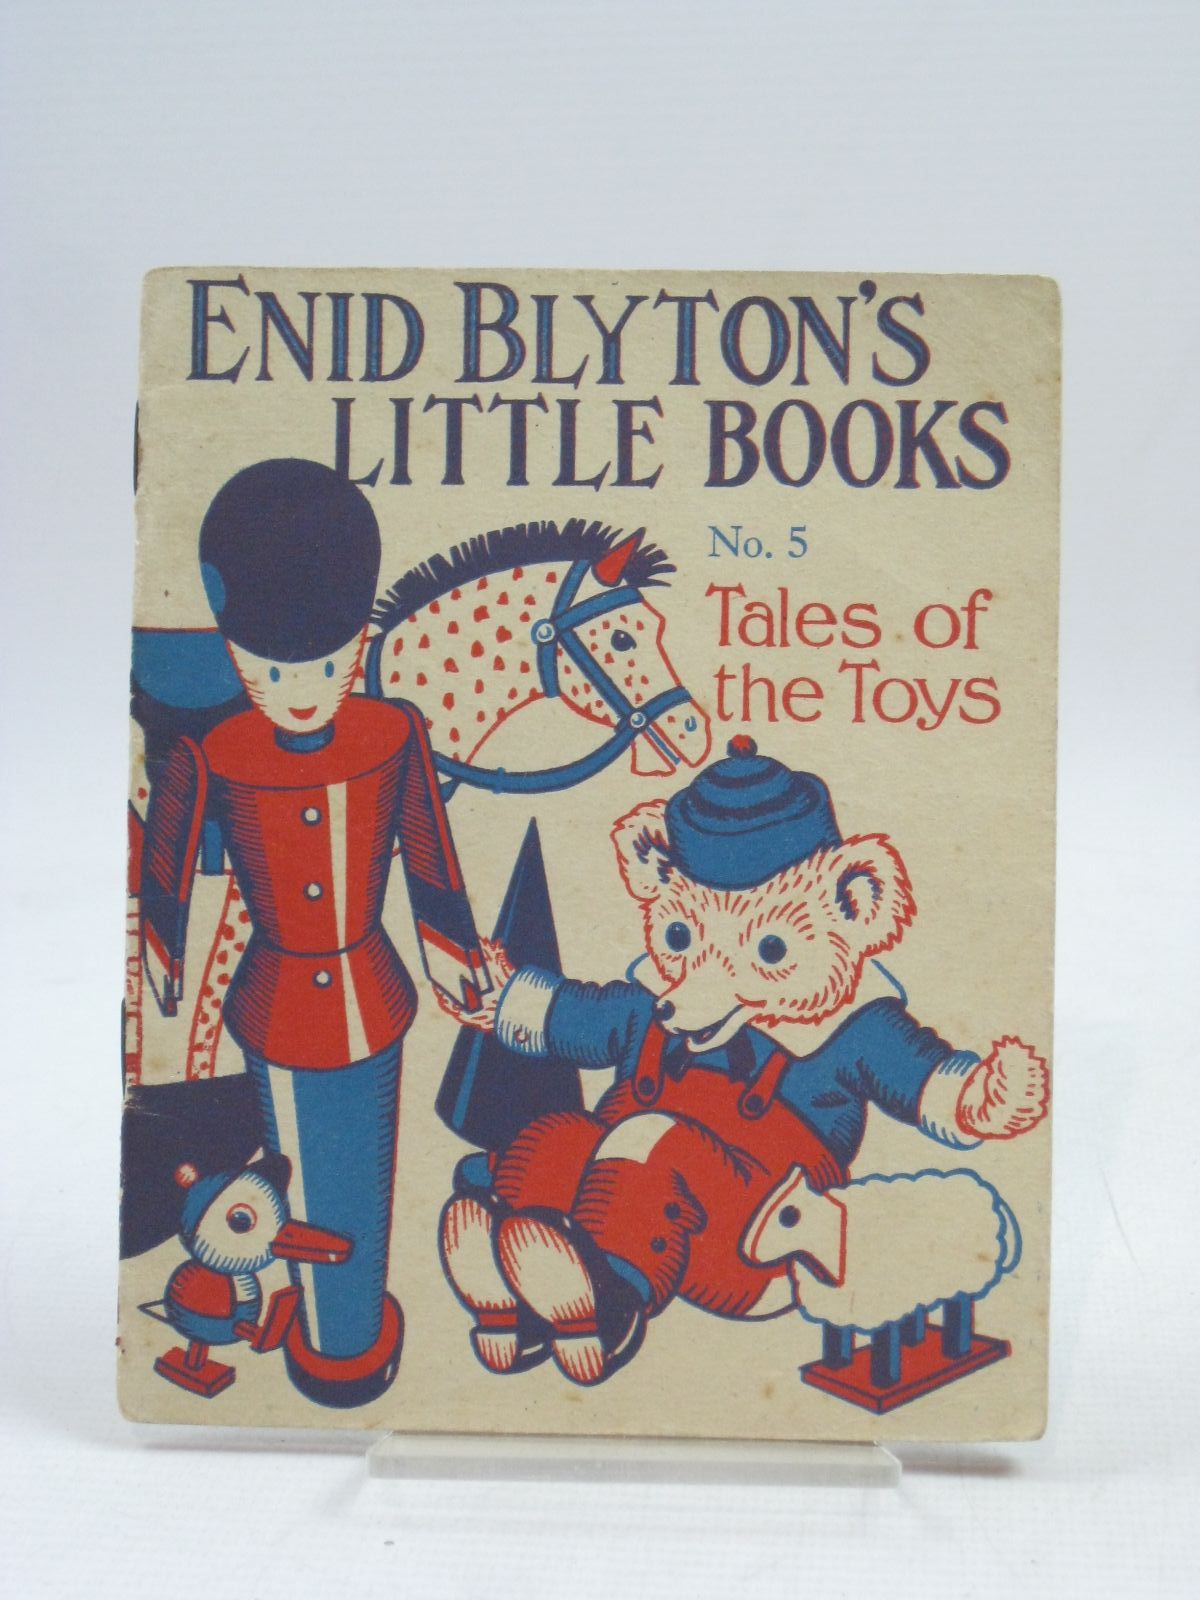 Cover of ENID BLYTON'S LITTLE BOOKS NO. 5 - TALES OF THE TOYS by Enid Blyton